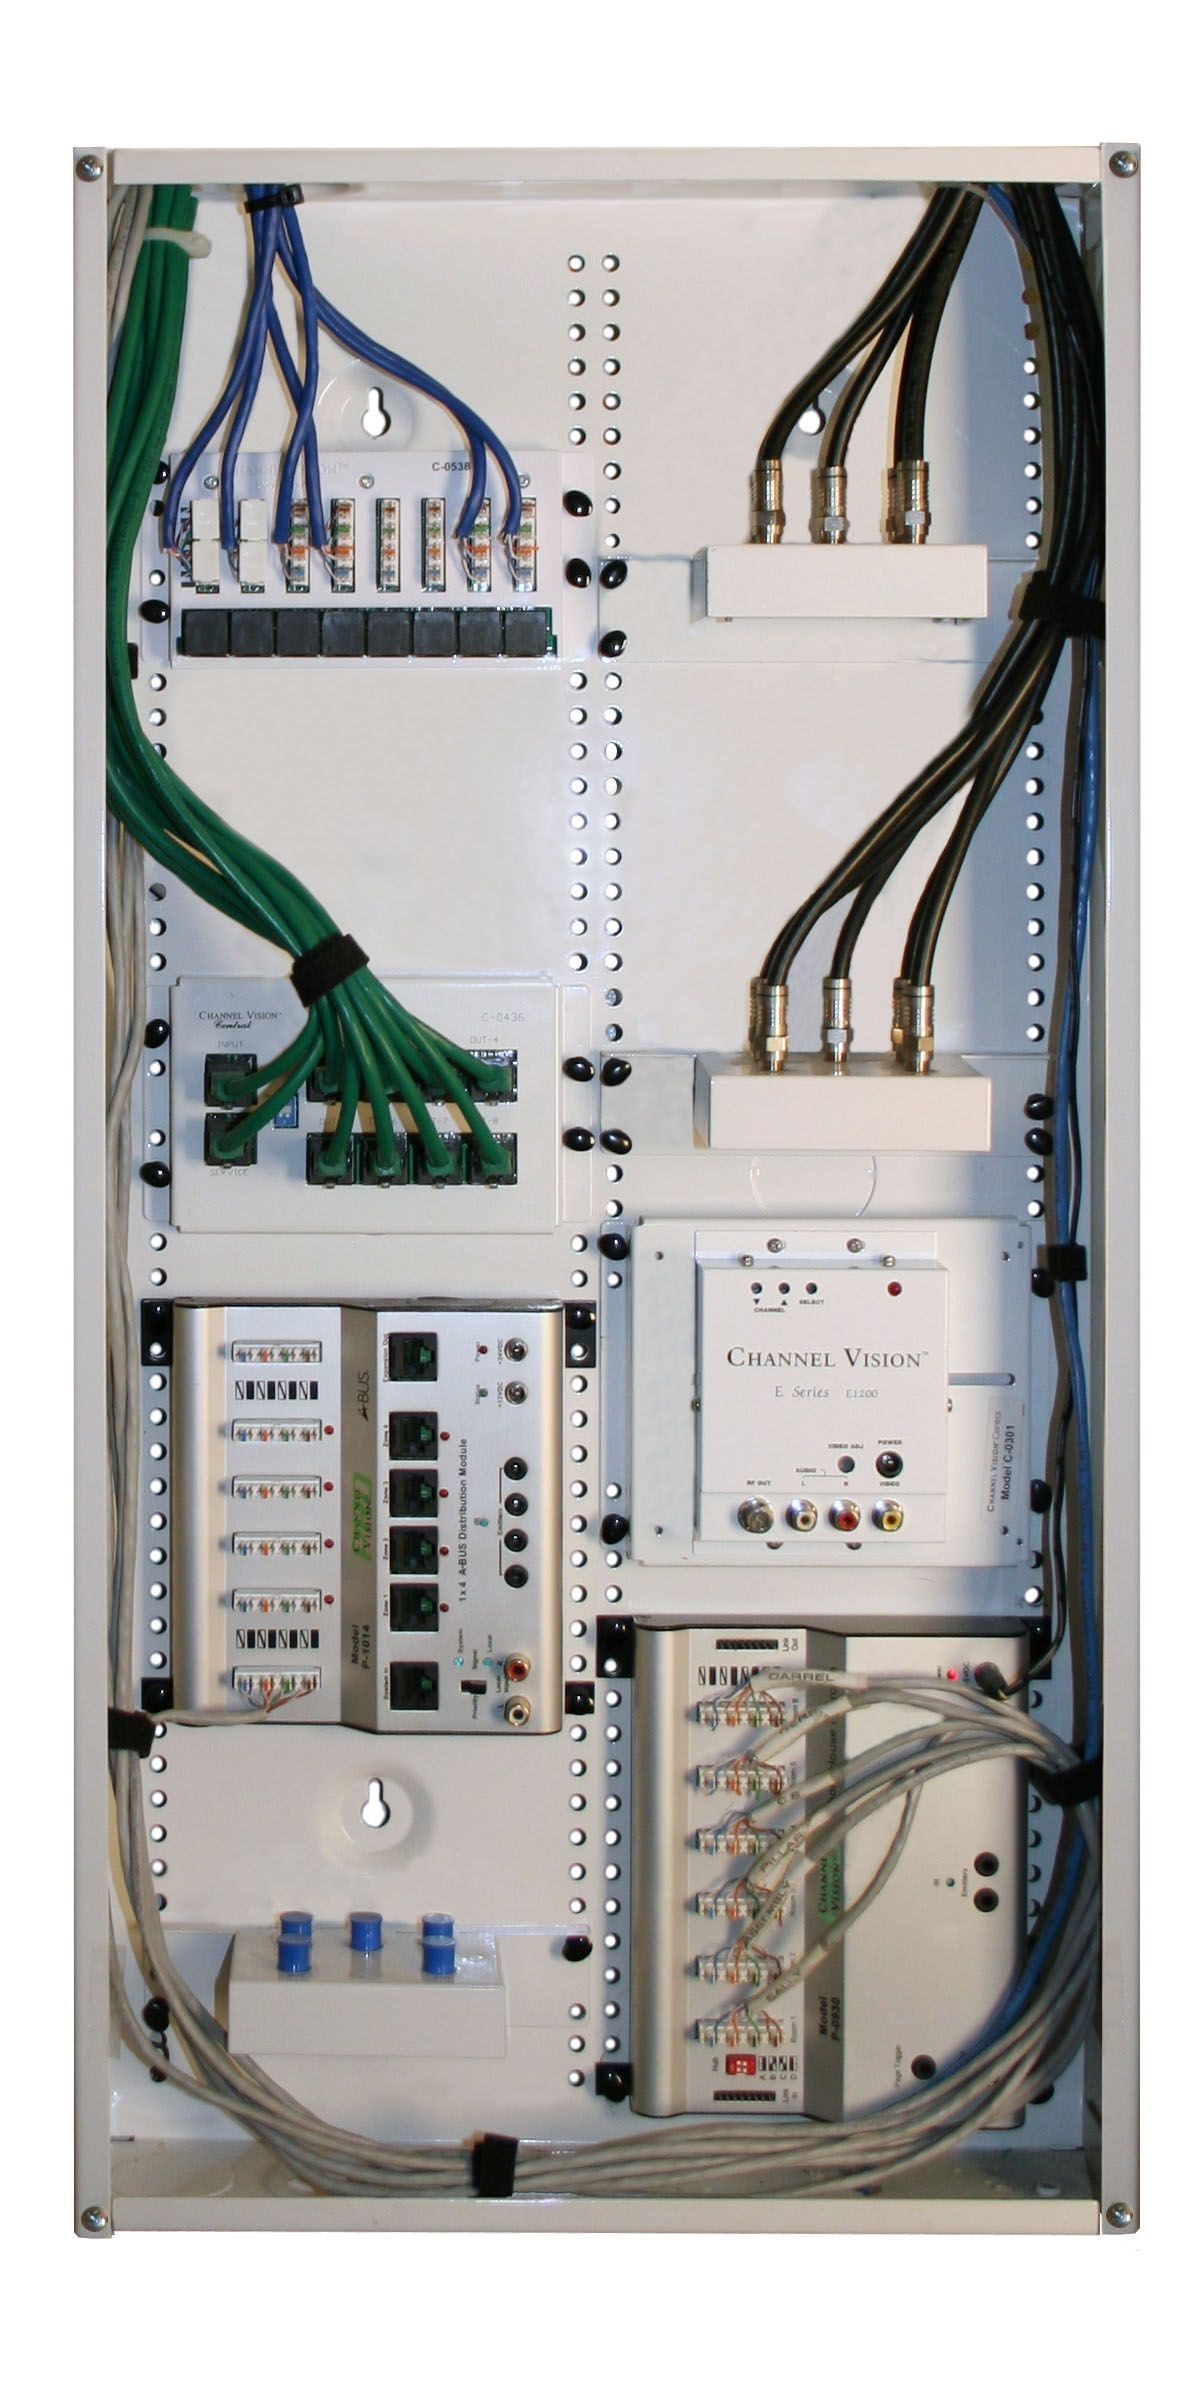 small resolution of structured wiring cable distribution panel for home tv internet audio and communications